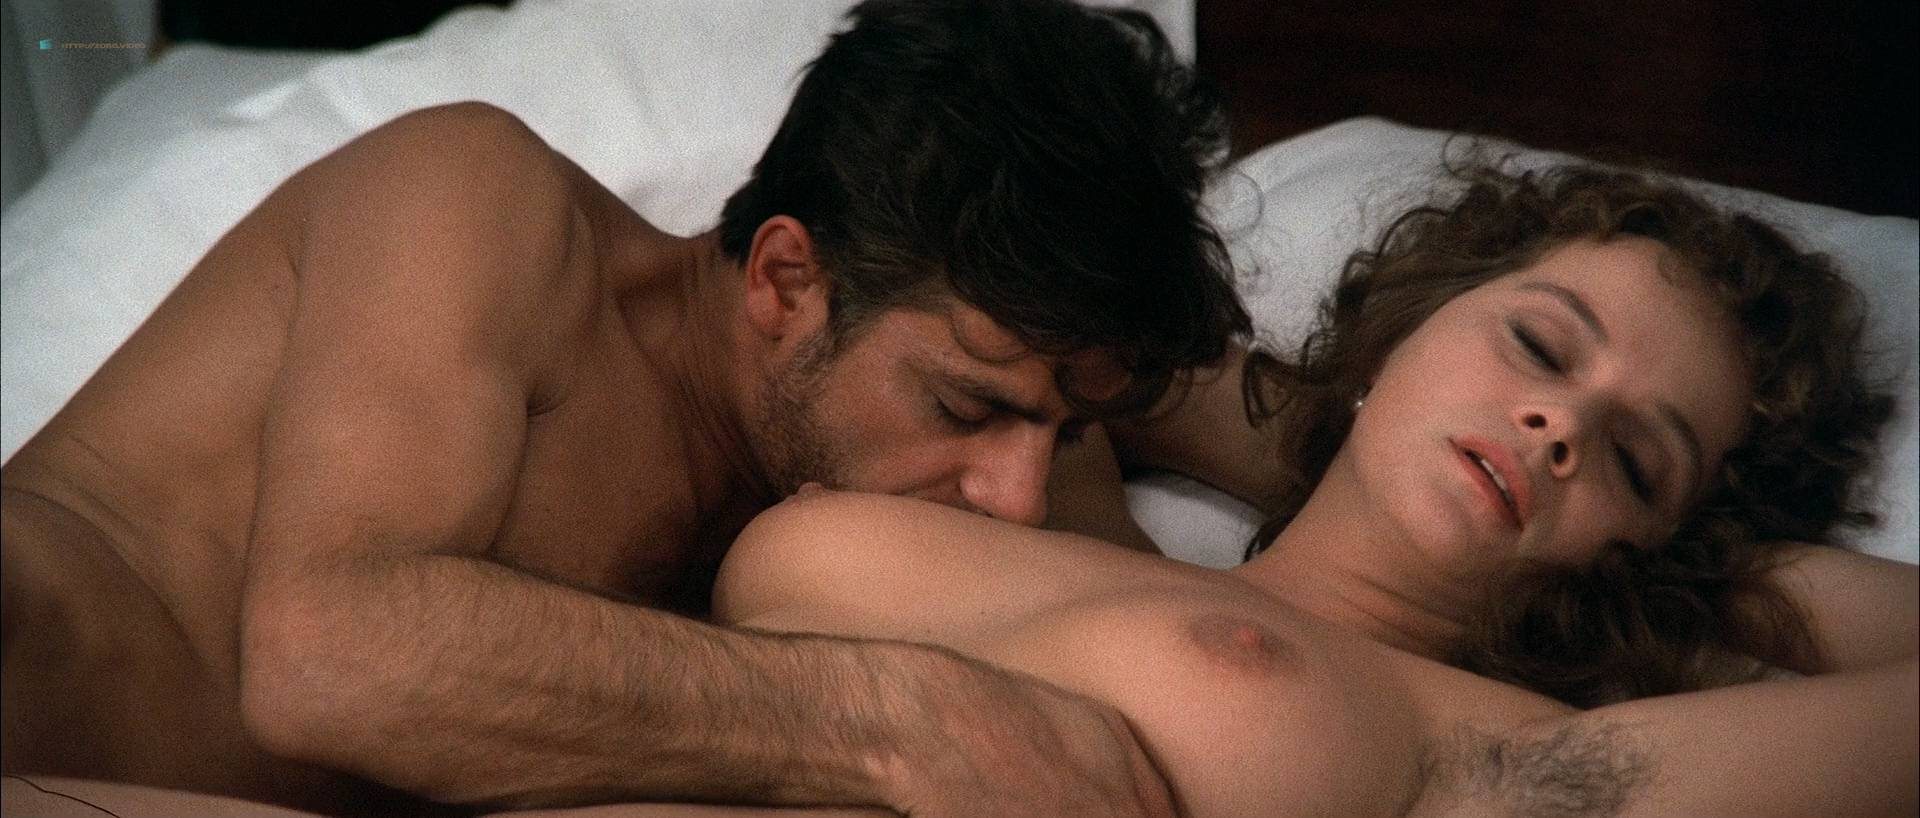 Cinzia roccaforte and lisa comshaw nude from la iena - 3 part 9